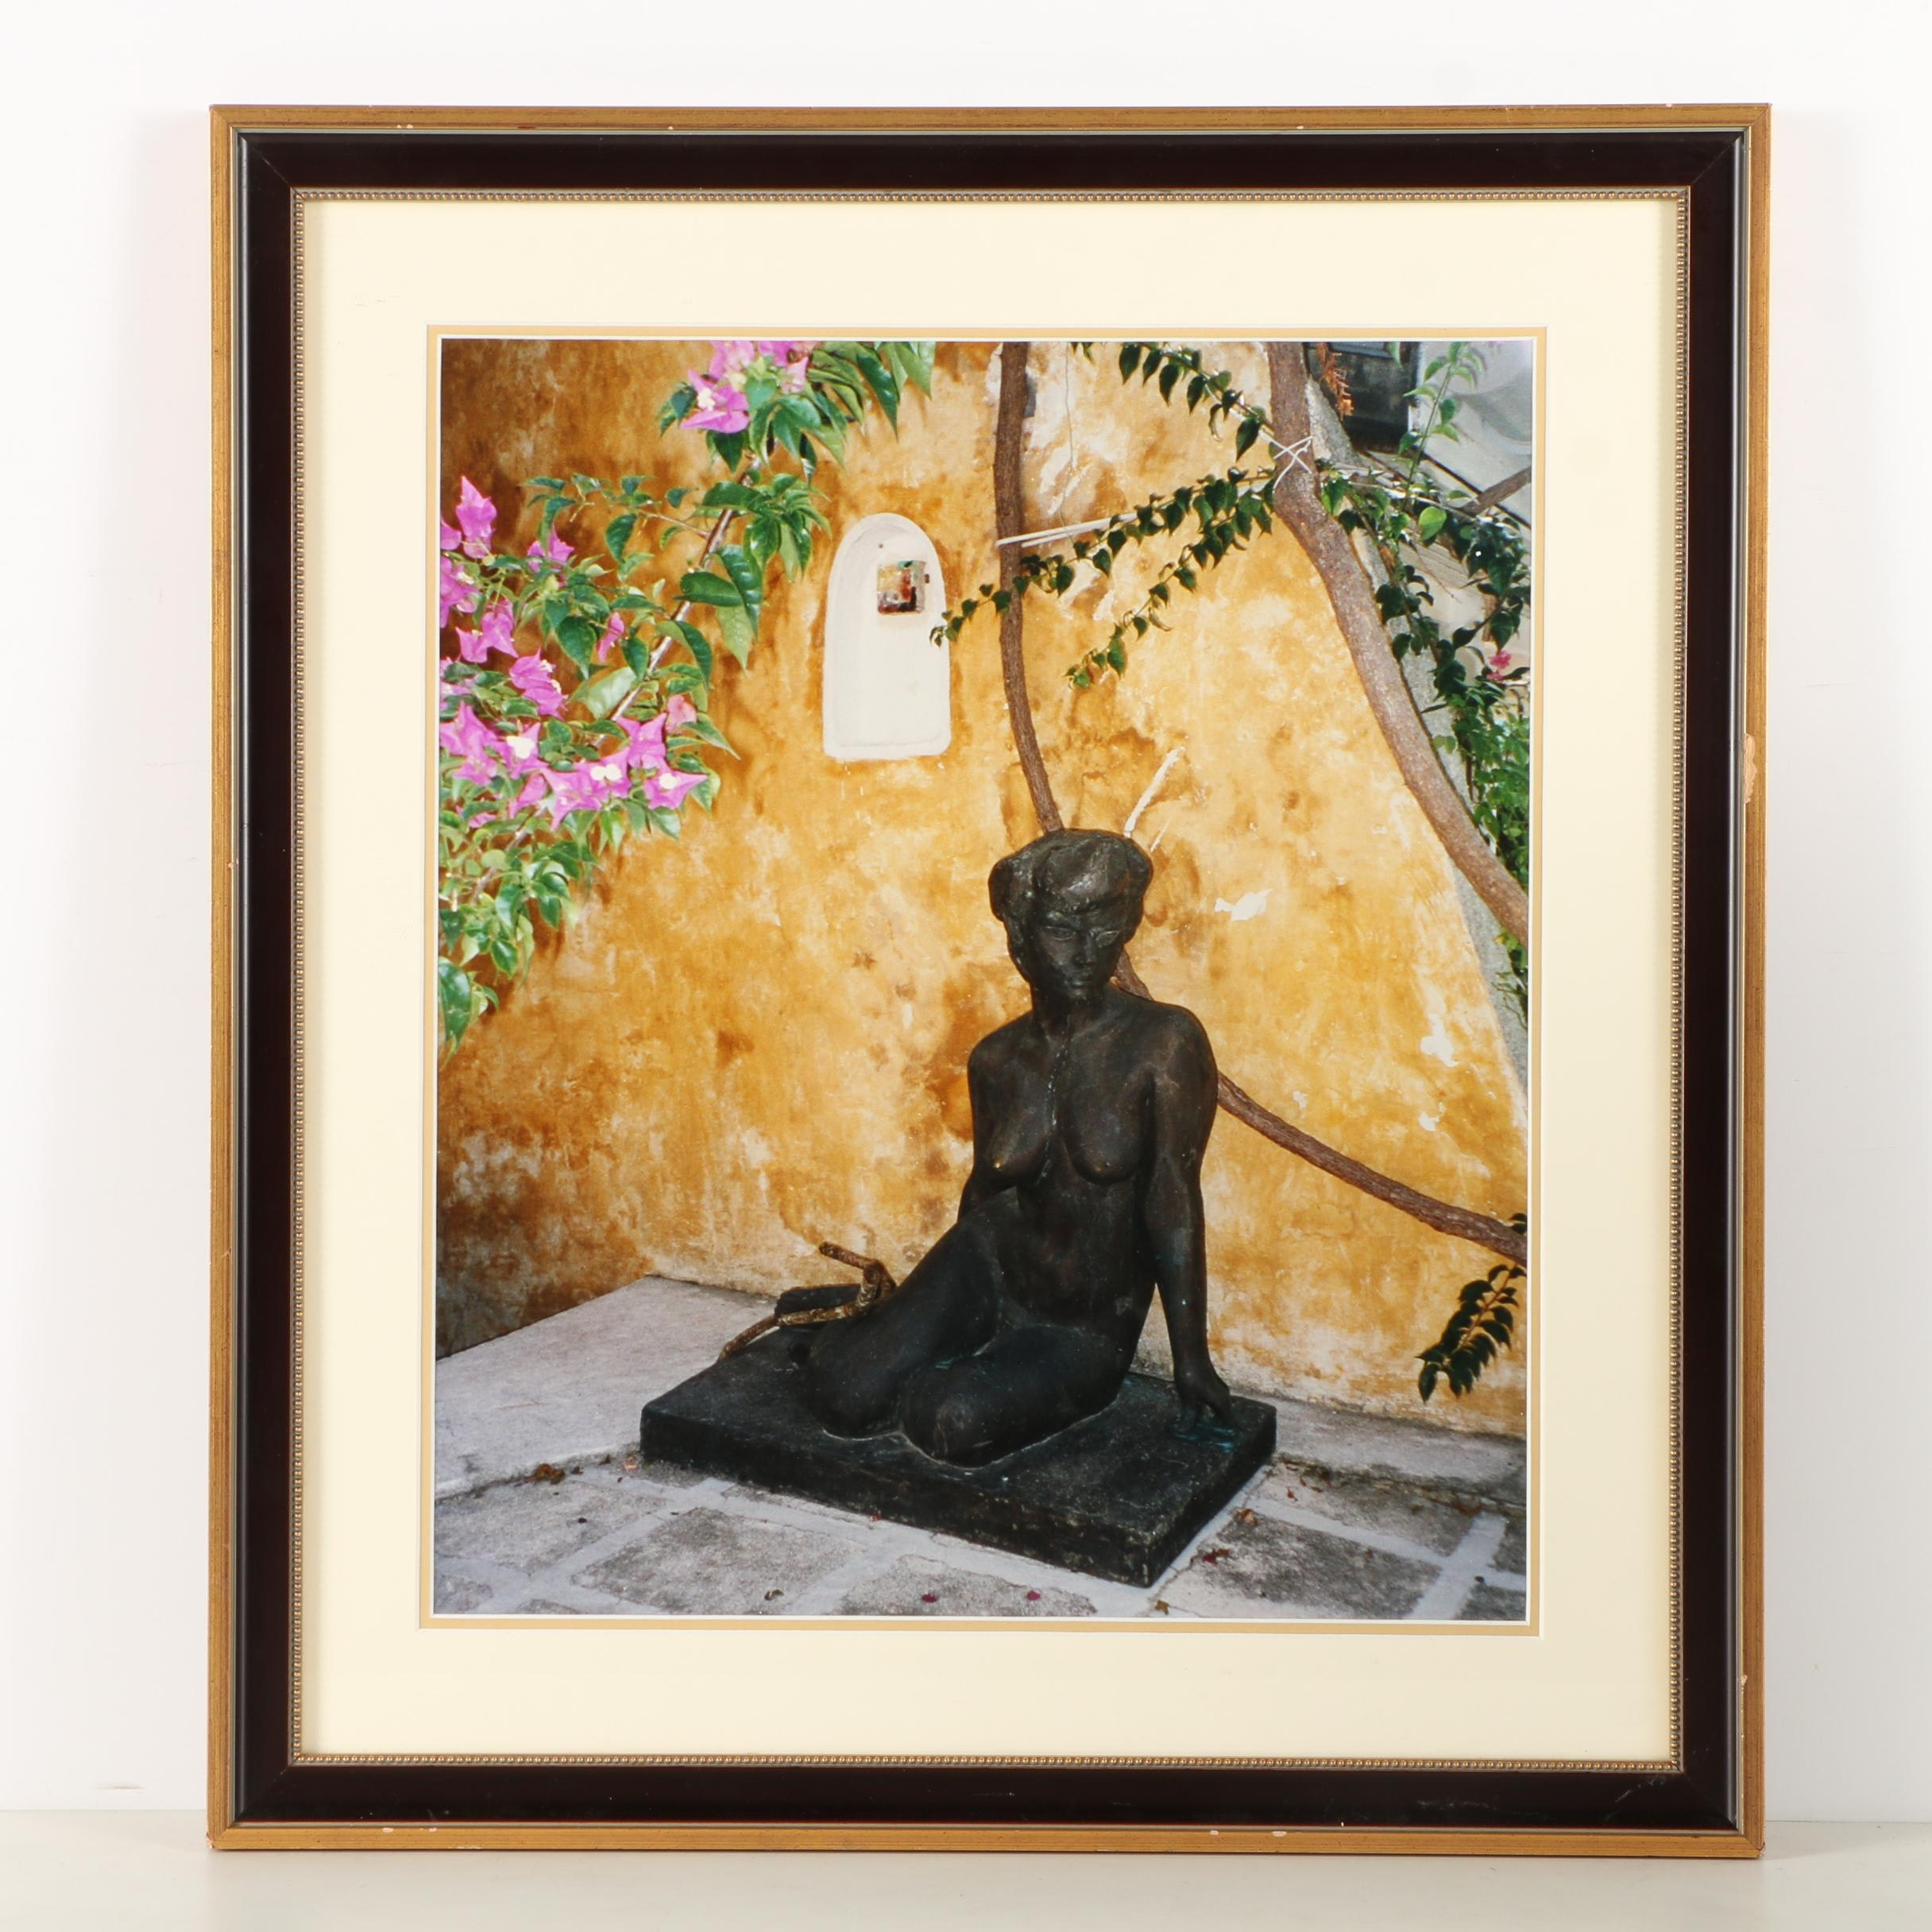 Digital Color Photographic Print of Bronze Female Figure in Courtyard